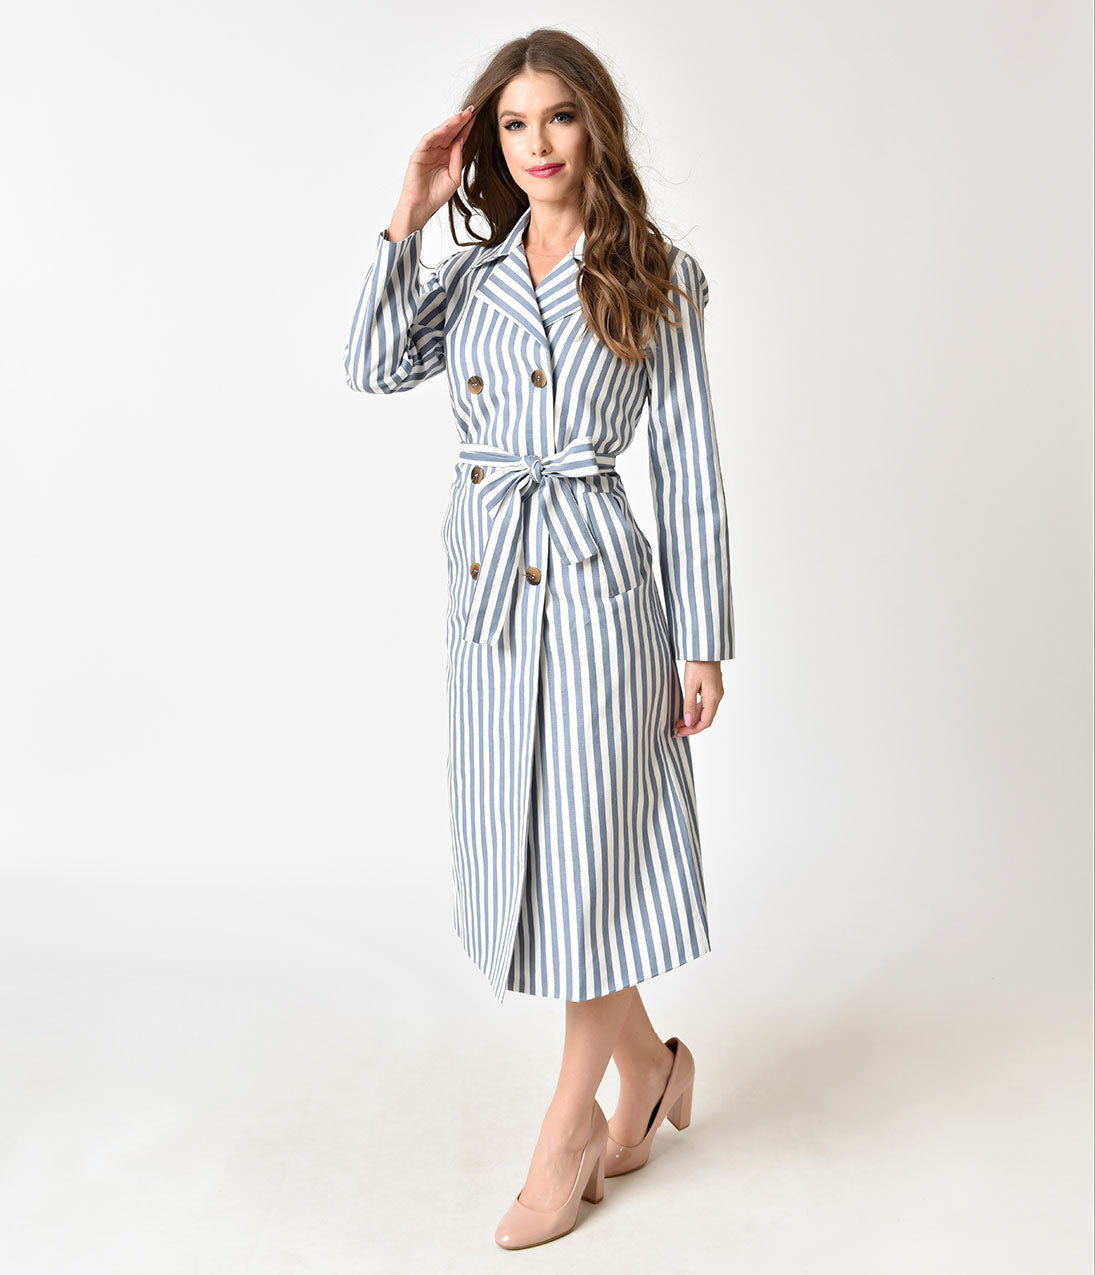 1950s Jackets and Coats | Swing, Pin Up, Rockabilly Light Blue  White Striped Cotton Button Up Coat $92.00 AT vintagedancer.com